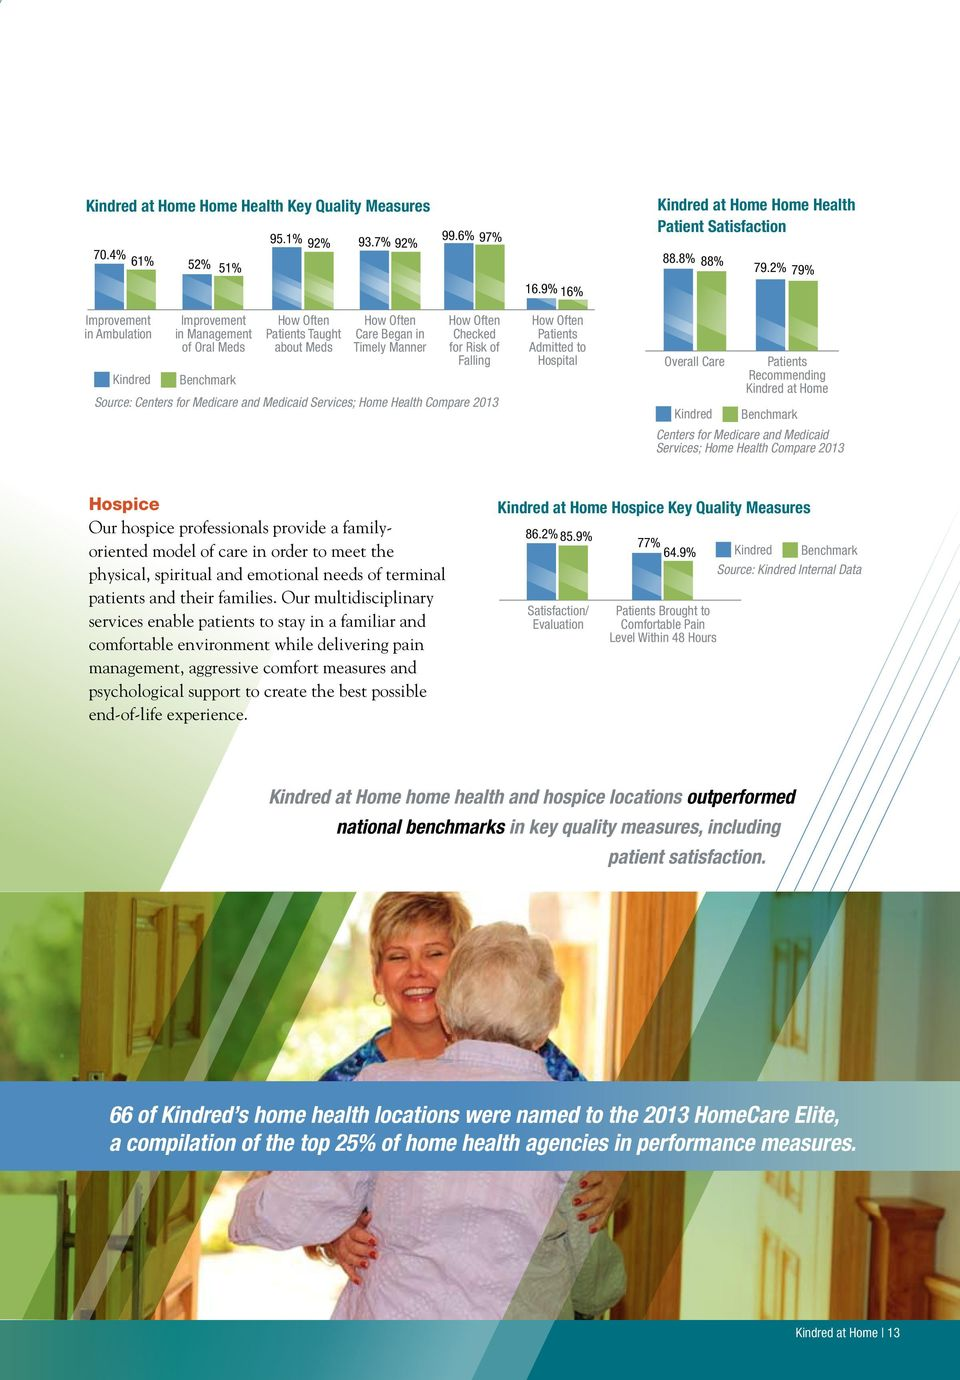 Falling Source: Centers for Medicare and Medicaid Services; Home Health Compare 2013 How Often Patients Admitted to Hospital Overall Care Kindred Patients Recommending Kindred at Home Benchmark